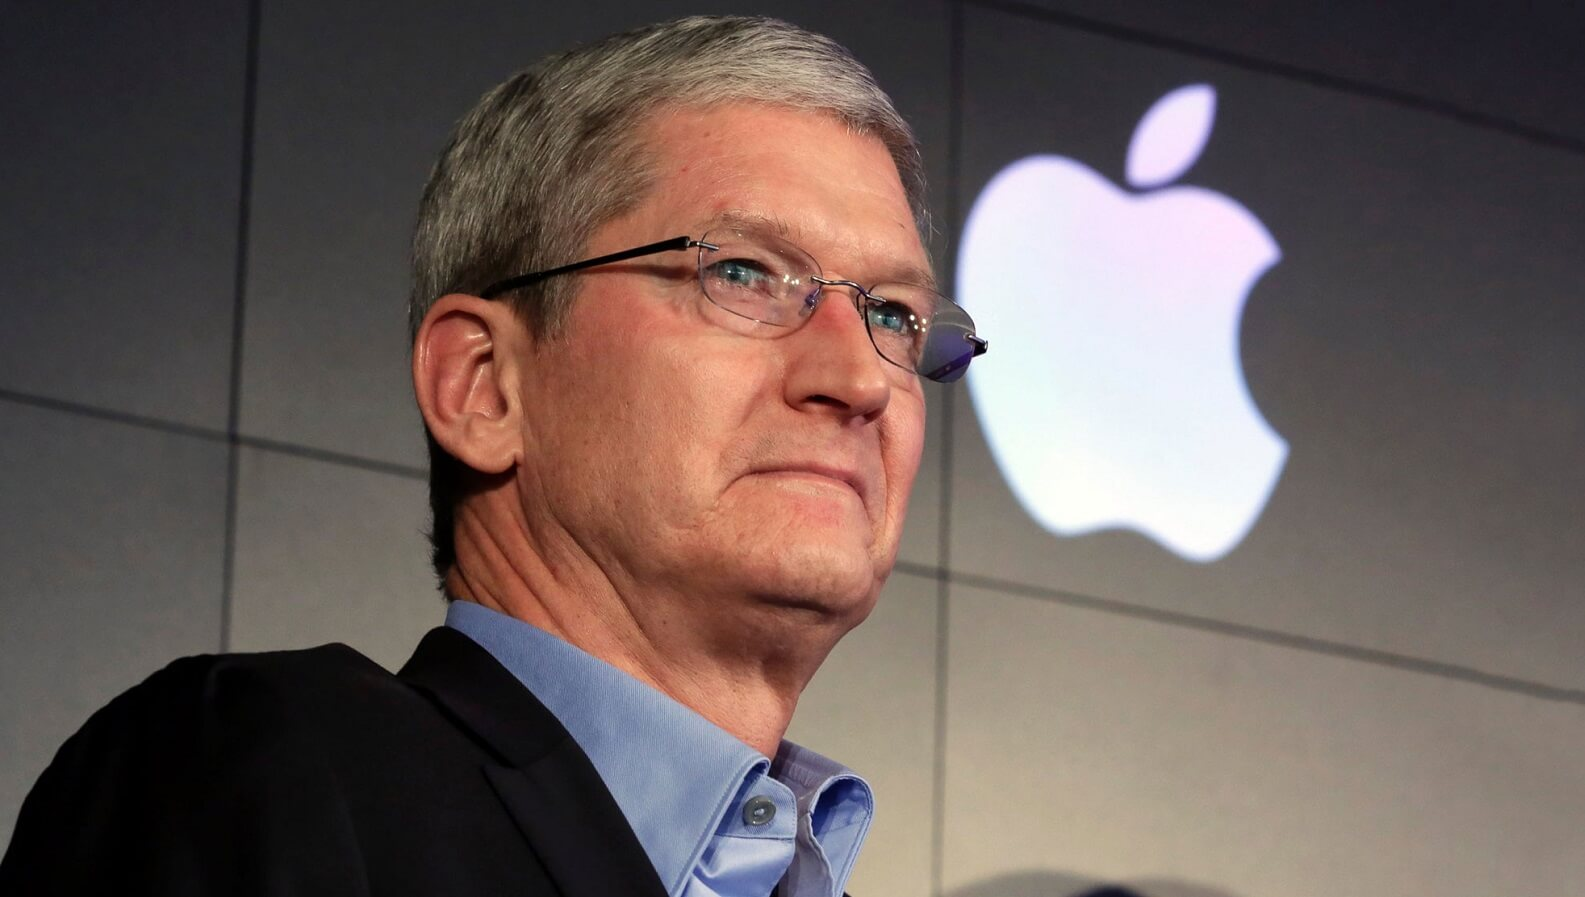 apple's tim cook standing with an apple logo behind him